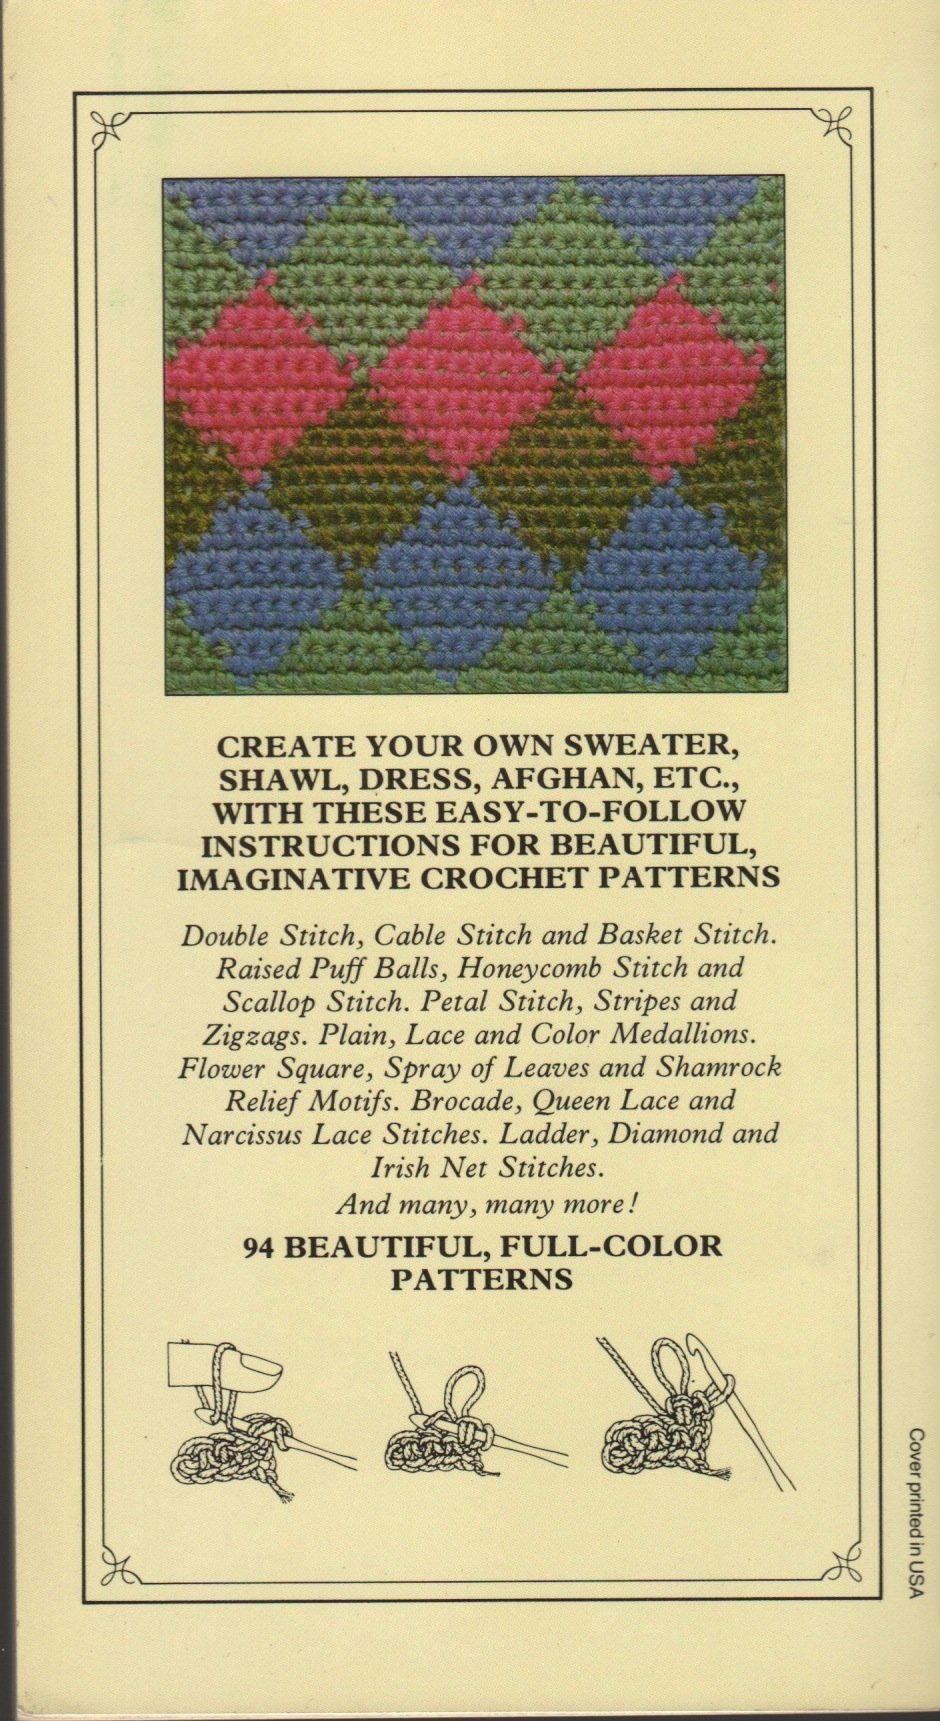 Crochet The Pattern Library Amy Carroll Dorothea Hall